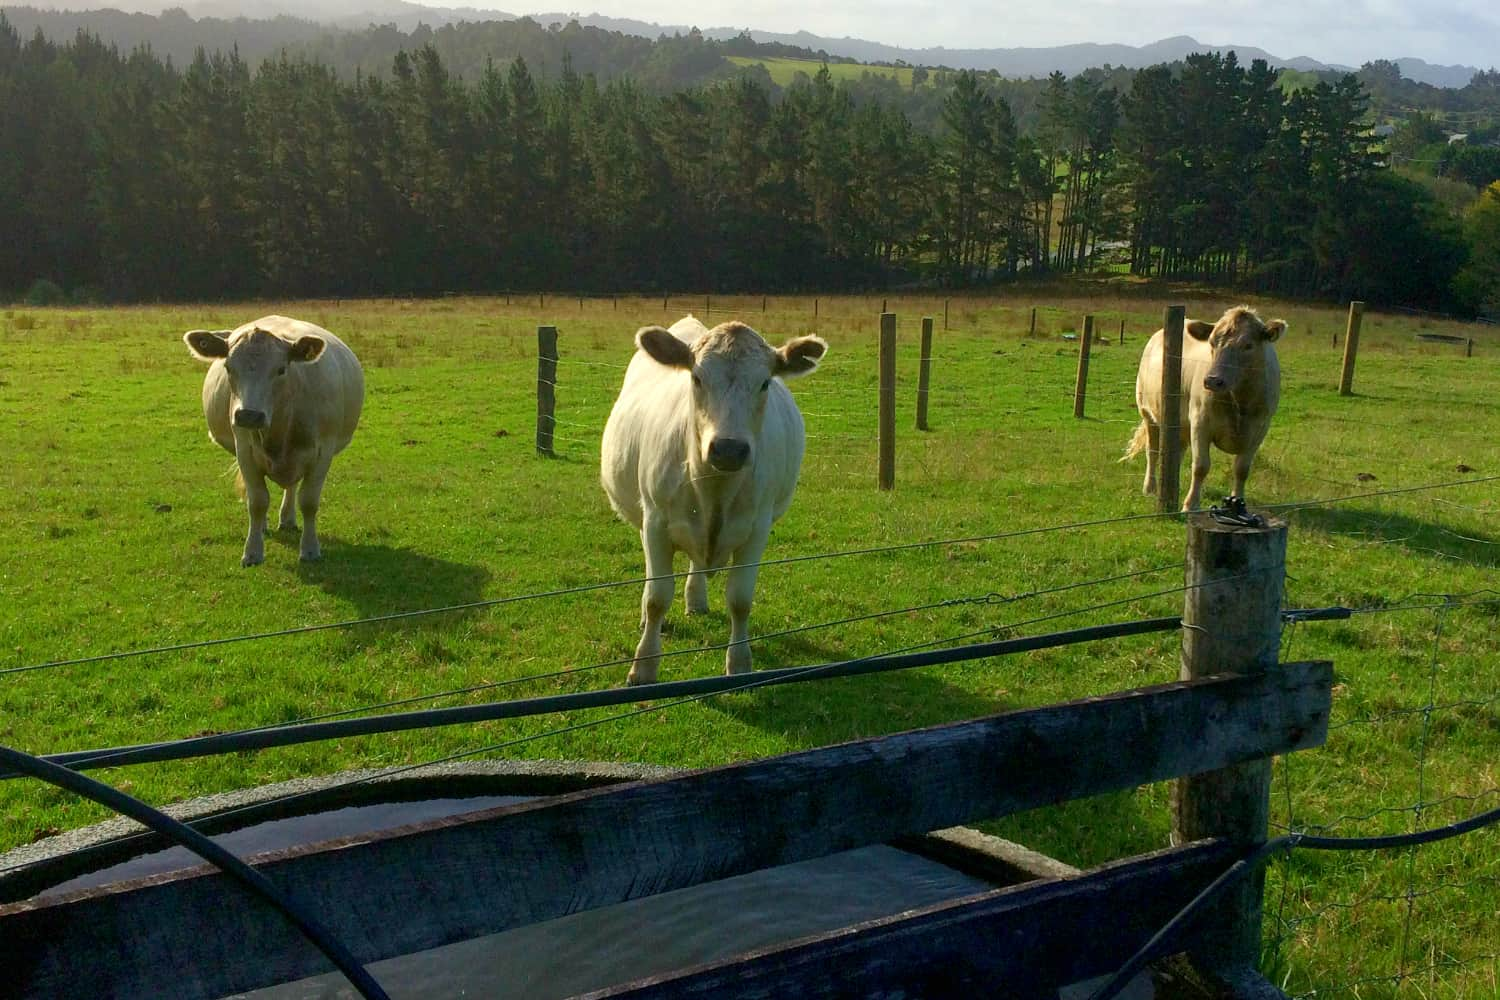 The Cows in the sheep paddock